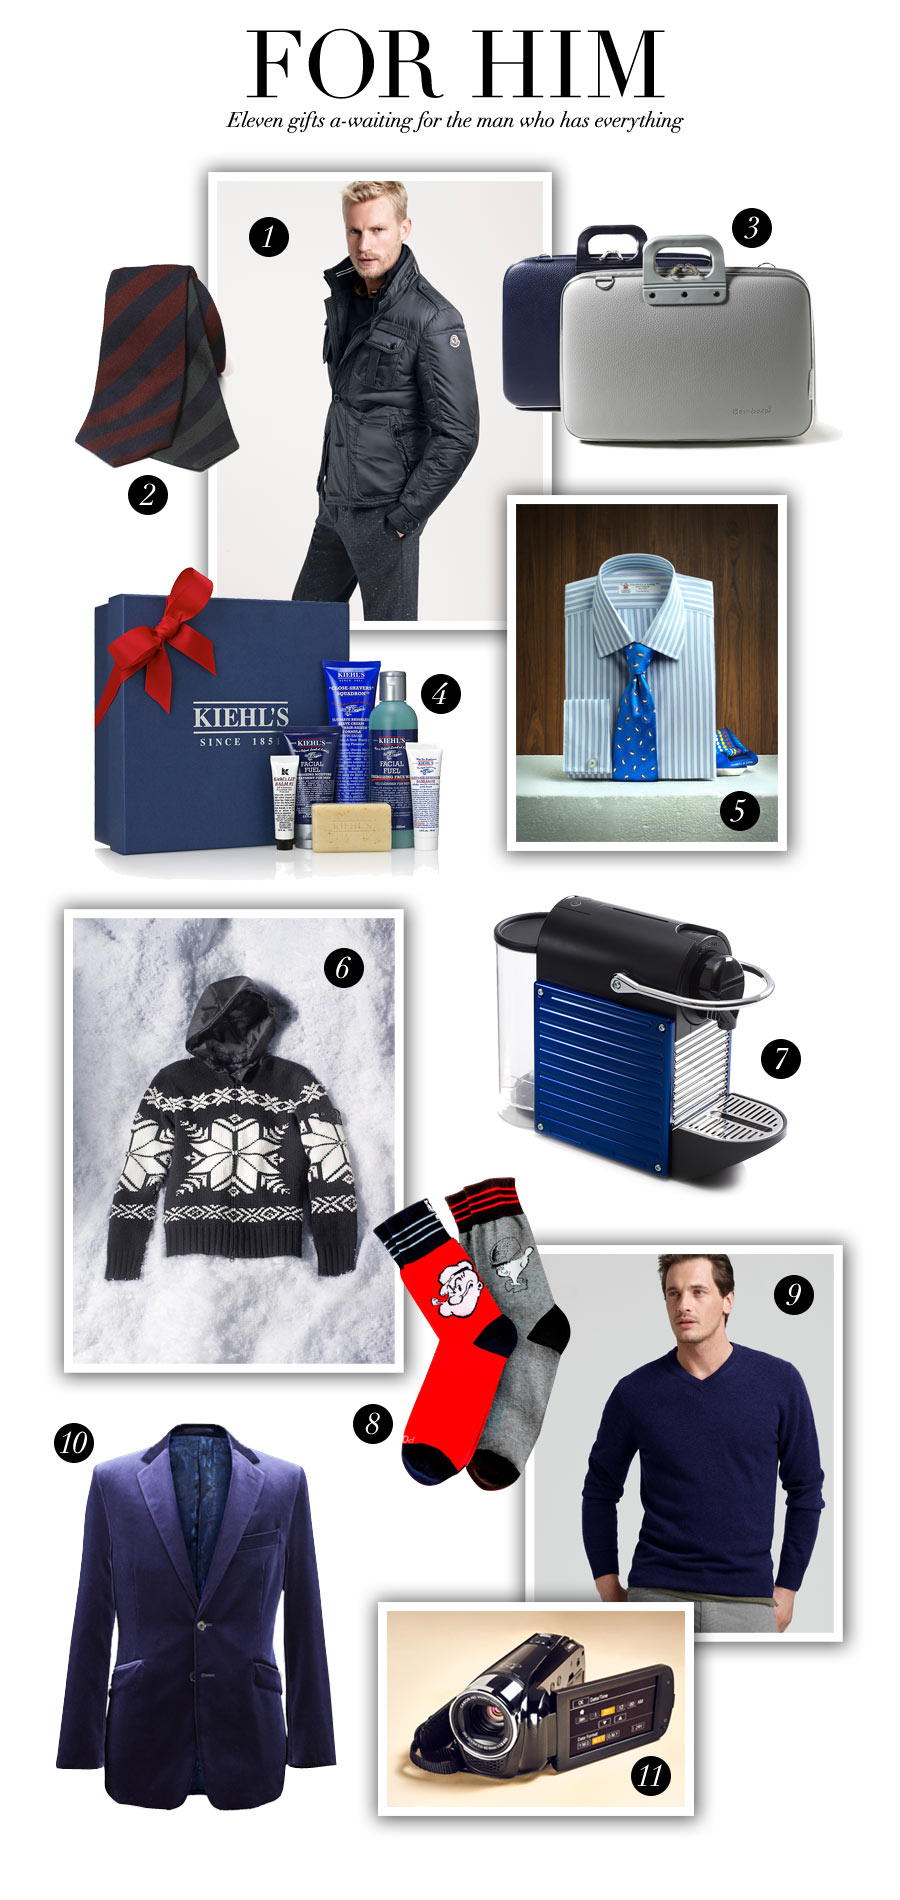 Holiday Fashion For Him: Eleven gifts a-waiting for the man who has everything - Holiday Fashion For Her & Him by Brooke Jaffe, Bloomingdale's